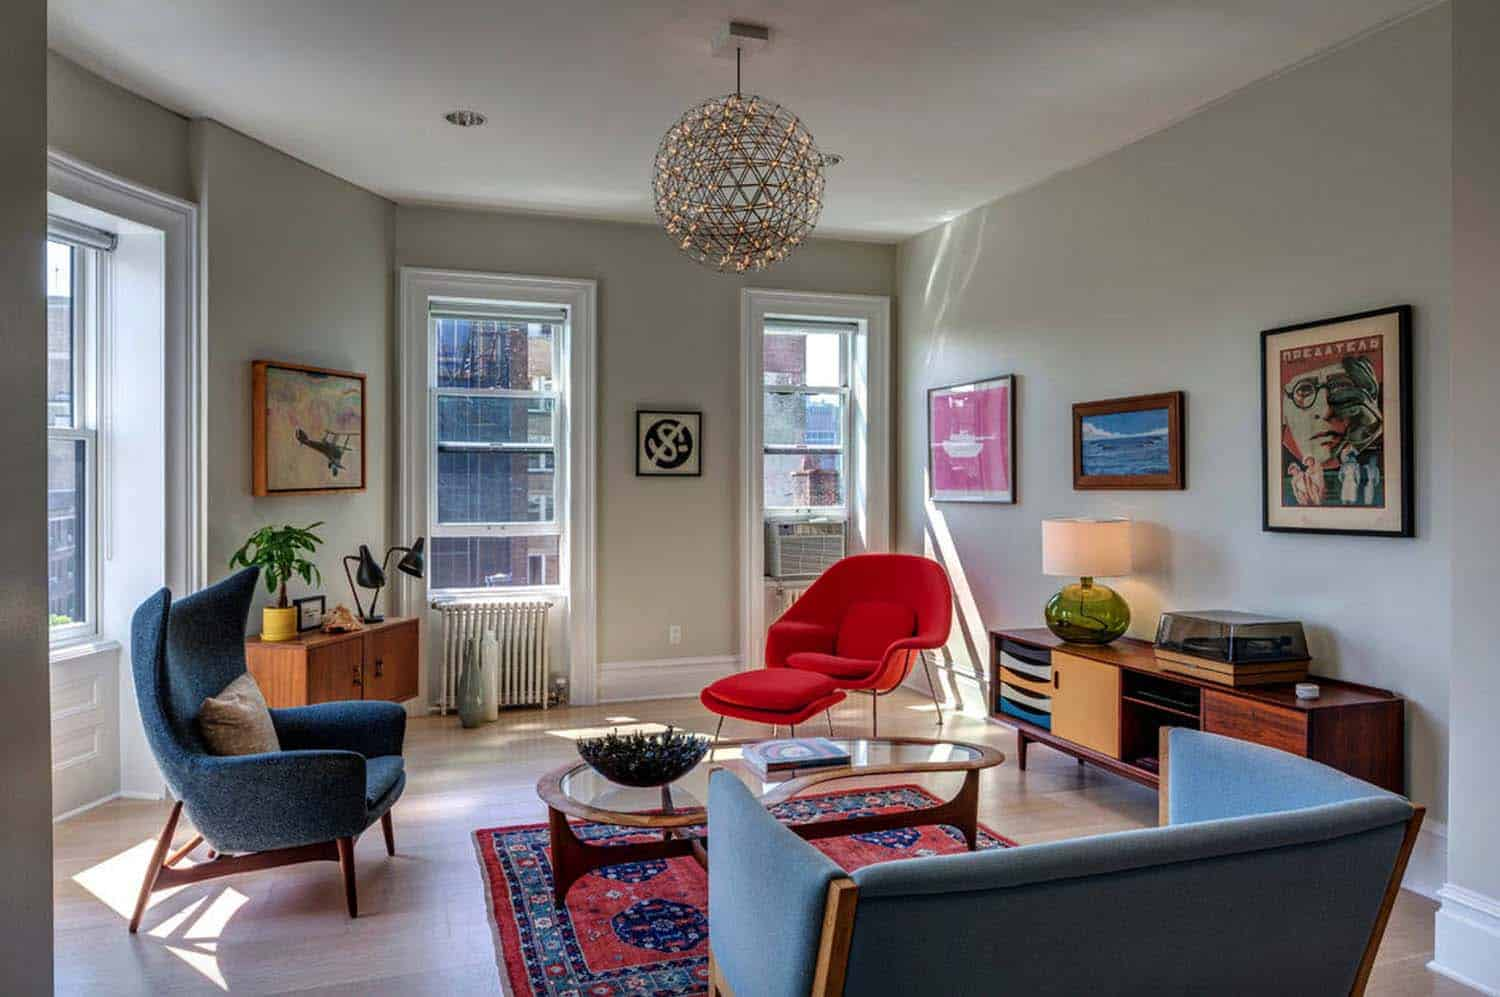 Mid century modern living room ideas Sofa The Stand Out Piece Of Furniture In This Midcentury Living Room Is The Newark Fiber Glass Lounge Arm Chair In Redaeon Furniture Illuminating The Space Is One Kindesign 38 Absolutely Gorgeous Midcentury Modern Living Room Ideas